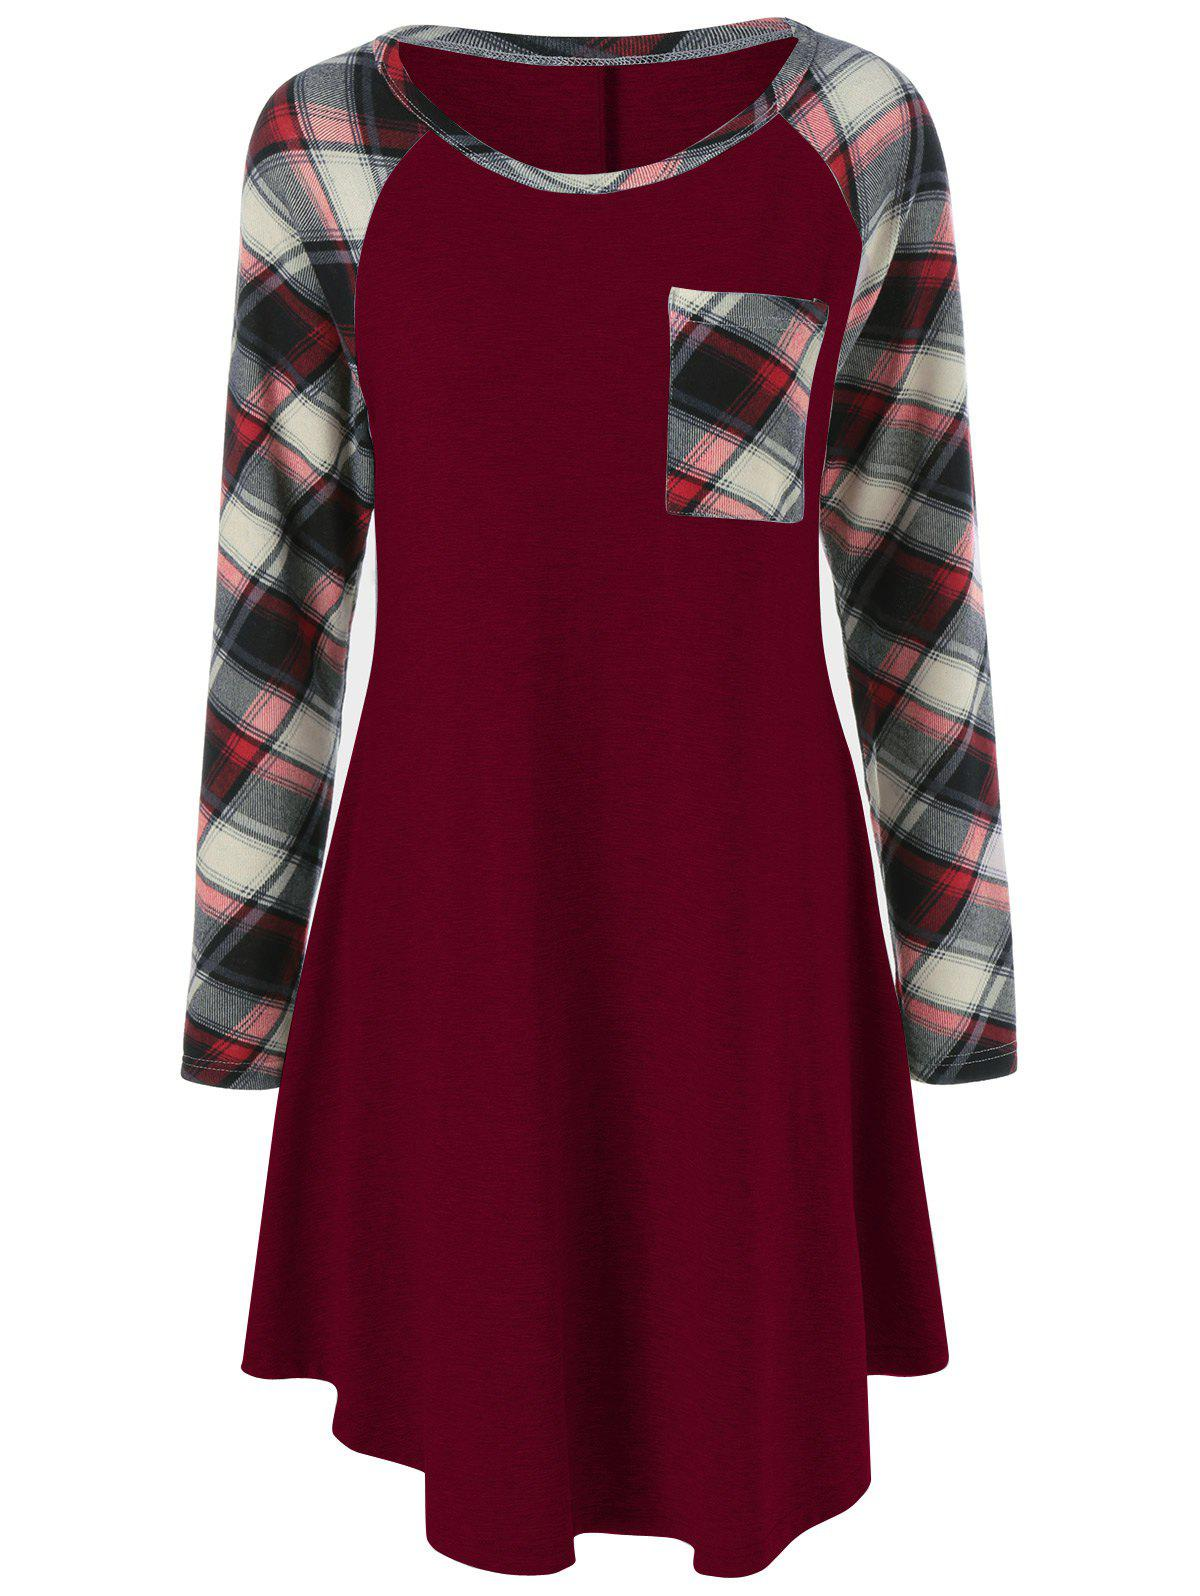 Plus Size Plaid Garniture simple robe de poche - Rouge Foncé 4XL